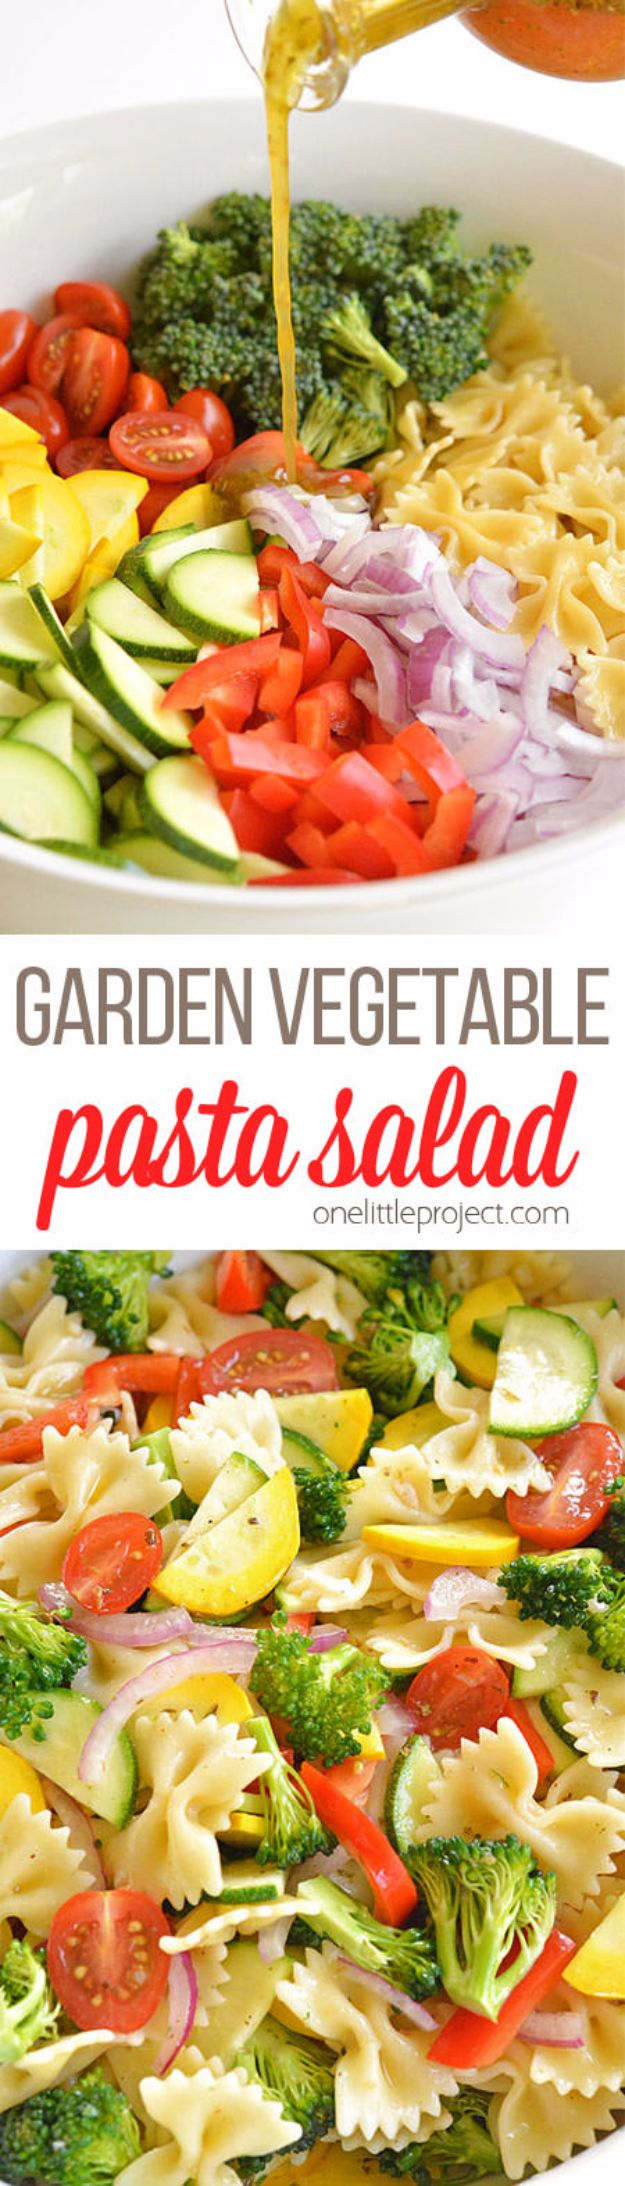 Best Dinner Salad Recipes - Garden Vegetable Pasta Salad - Easy Salads to Make for Quick and Healthy Dinners - Healthy Chicken, Egg, Vegetarian, Steak and Shrimp Salad Ideas - Summer Side Dishes, Hearty Filling Meals, and Low Carb Options http://diyjoy.com/dinner-salad-recipes